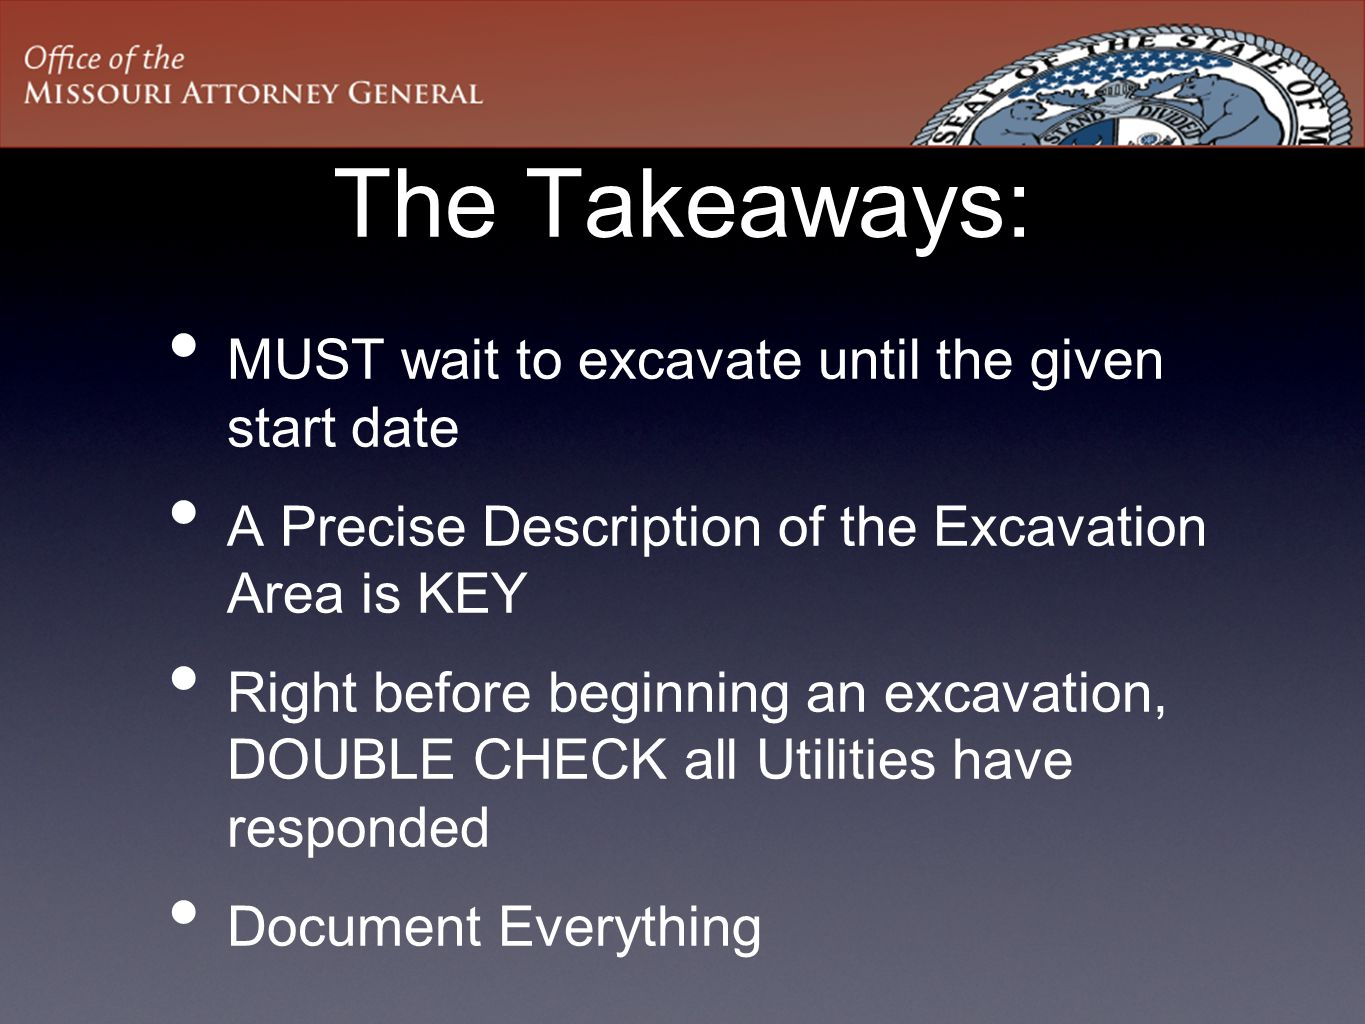 The Takeaways: MUST wait to excavate until the given start date